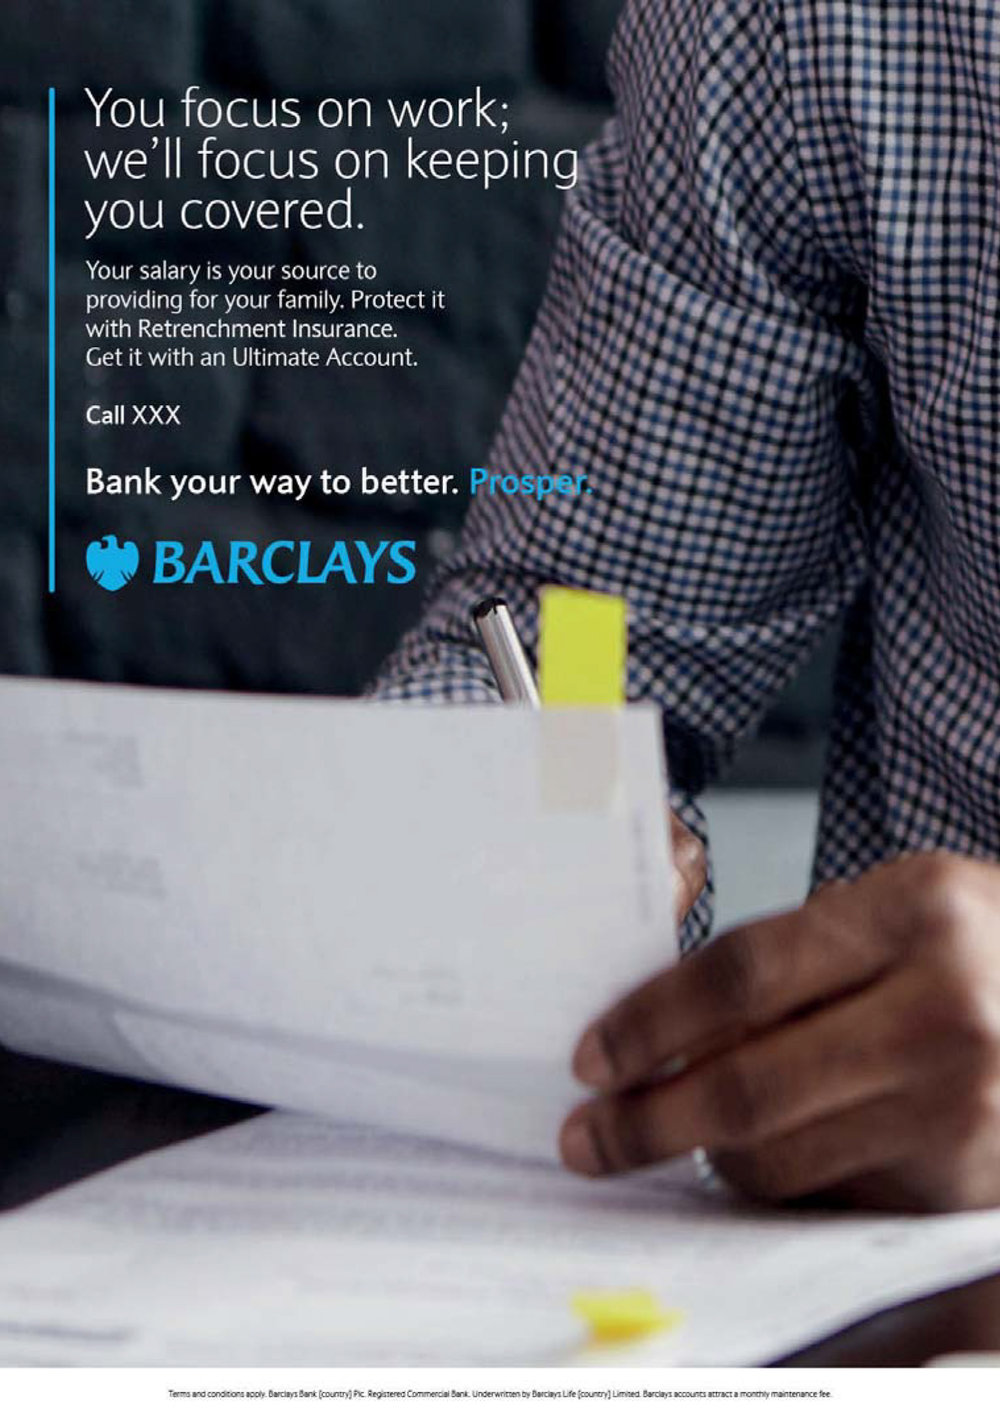 Barclays Personal Banking Campaign Toolkit 26 APRIL-108.jpg